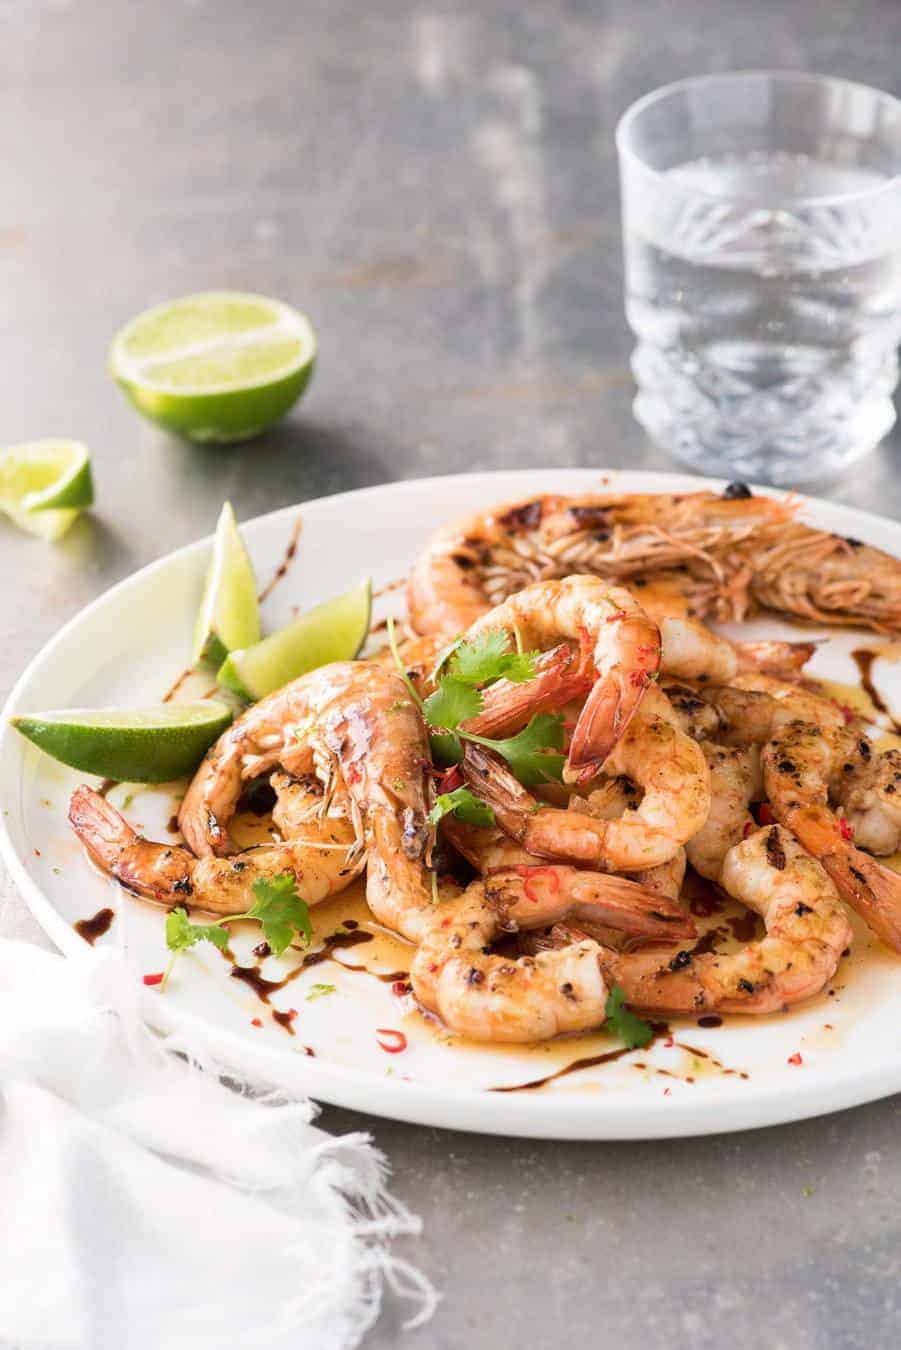 Asian Grilled Shrimp / Prawns - prawns drizzled with lime browned butter and drizzled with sweet soy sauce. It's 5 ingredient magic!